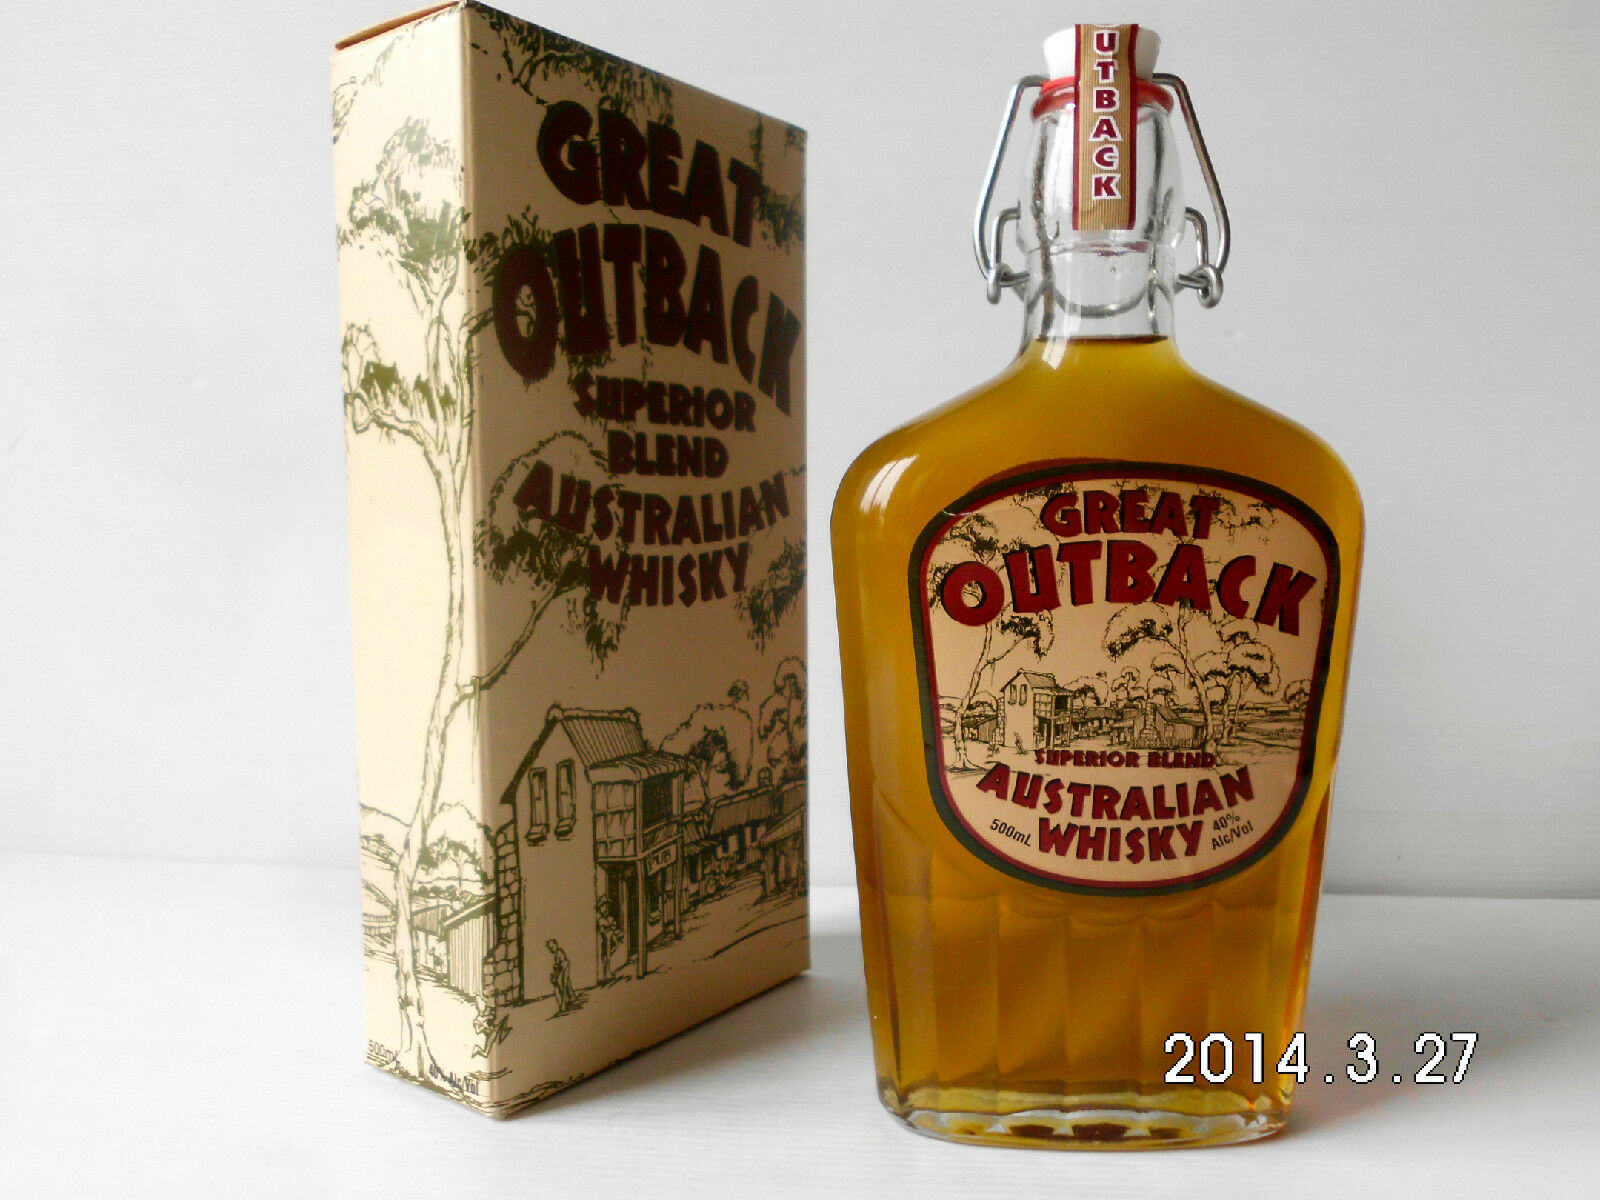 GREAT OUTBACK Rare Old Australian Superior Blend Whisky-Rare 500Ml Version!!